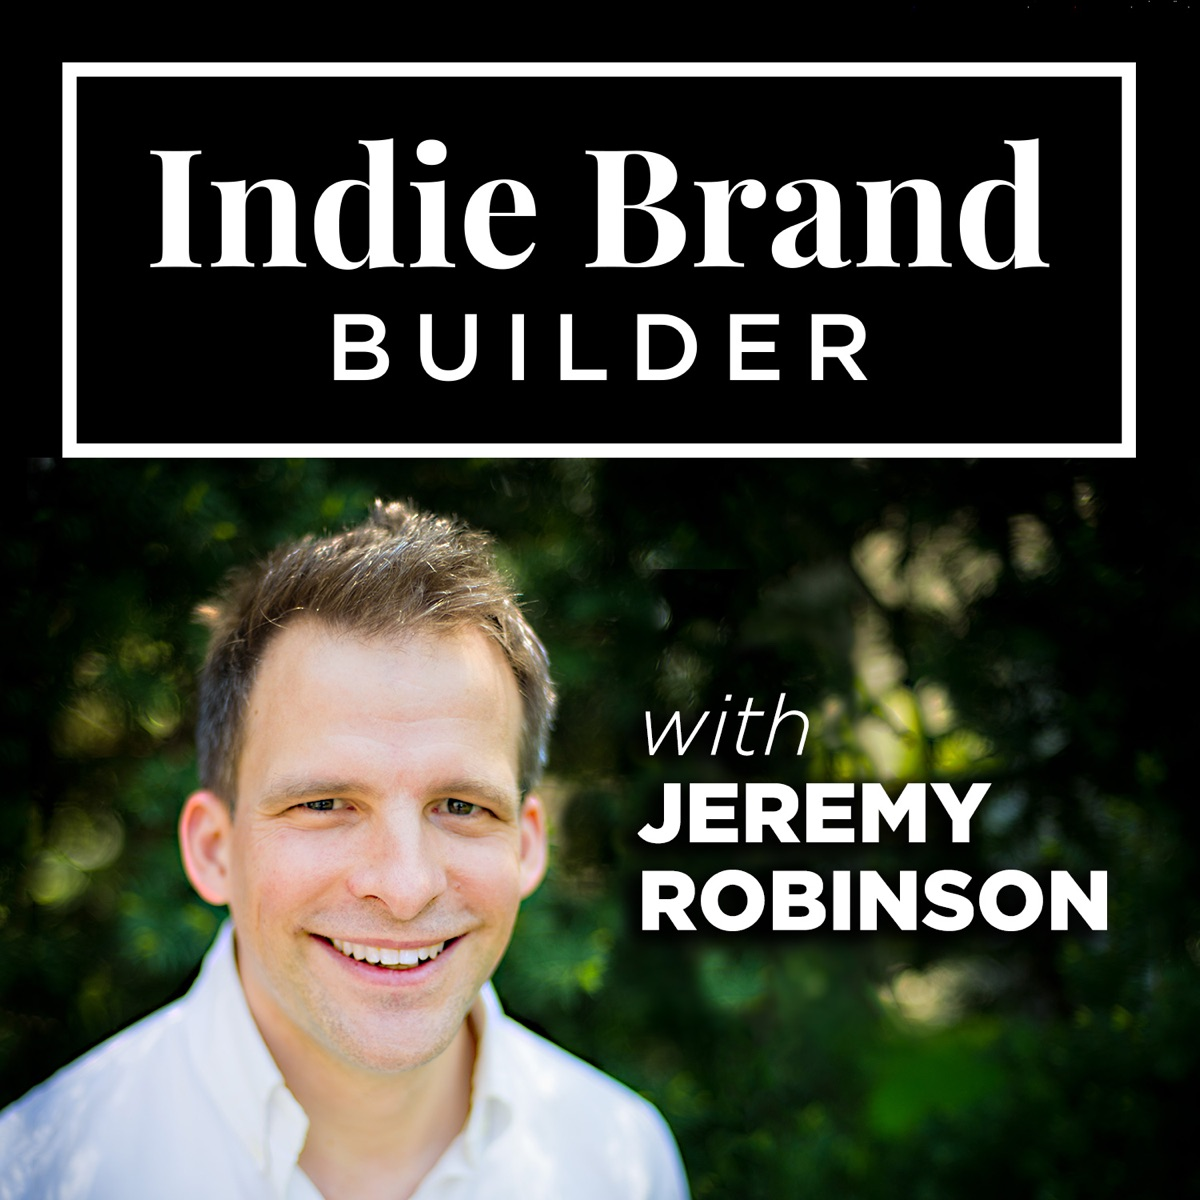 Indie Brand Builder: discussions with creative entrepreneurs and industry experts on how to build a 7 figure product business.